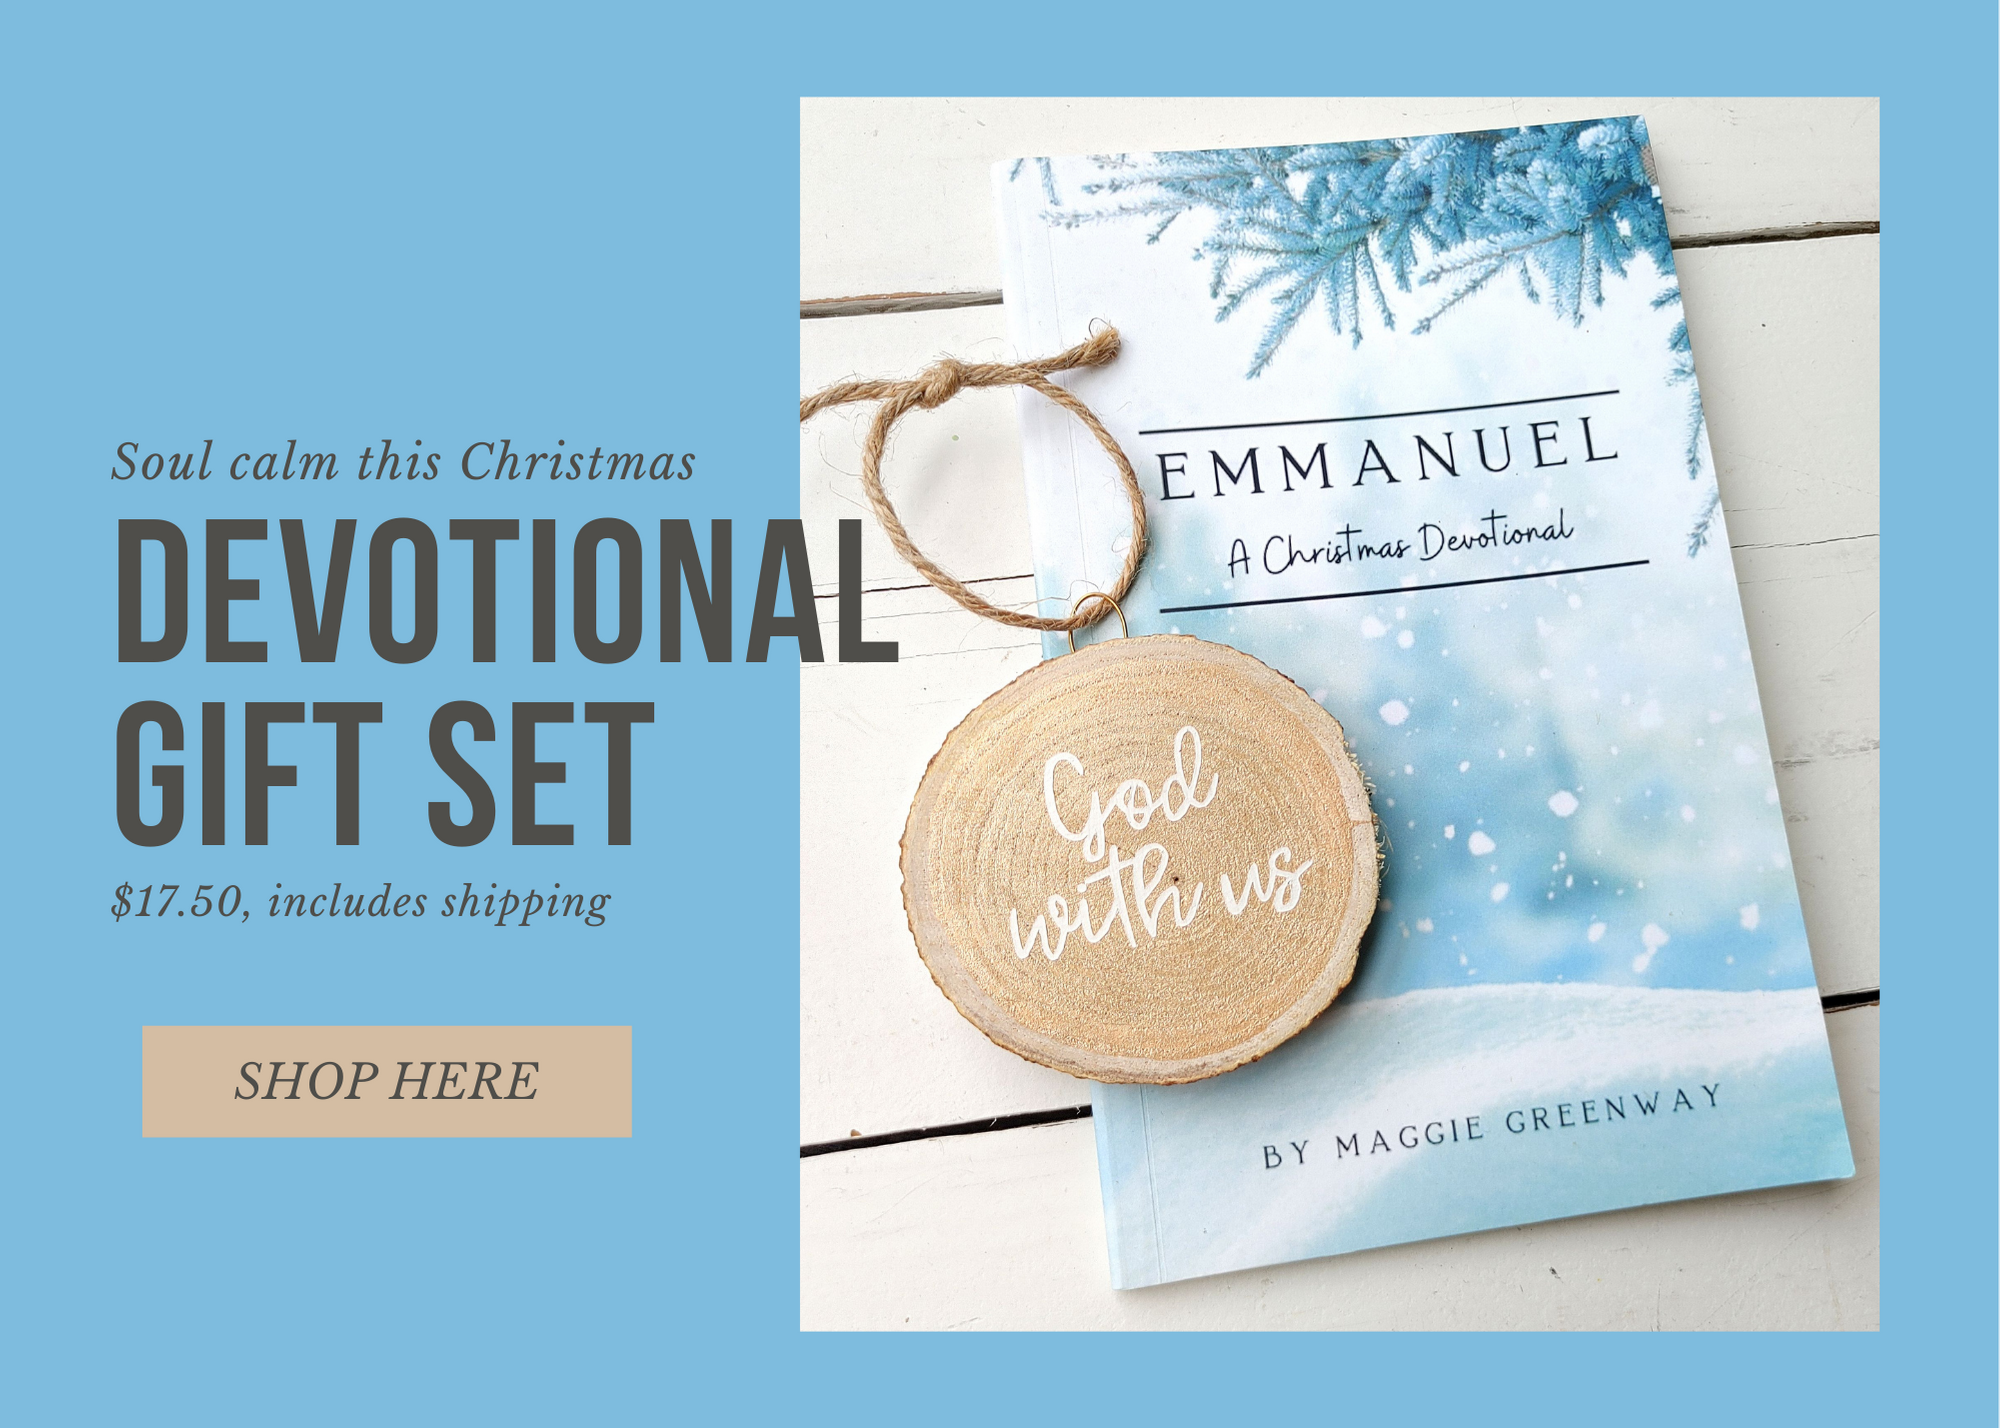 Emmanuel, Devotional Gift Set, She Pens Truth, Maggie Greenway